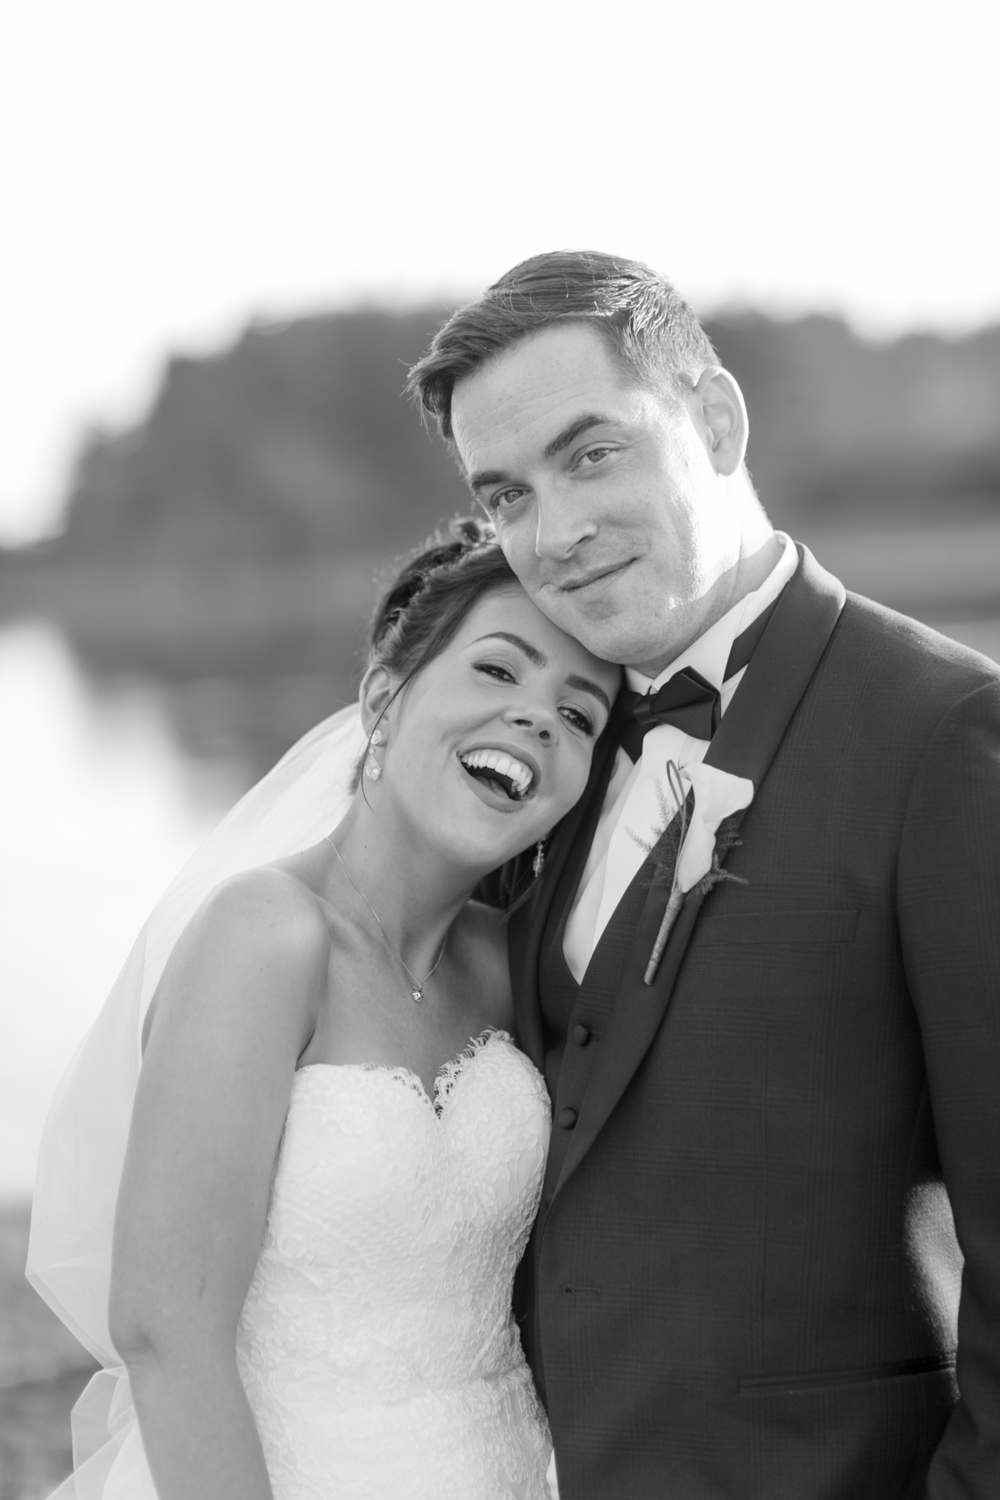 bride and groom laughing at the camera with a lake in the background